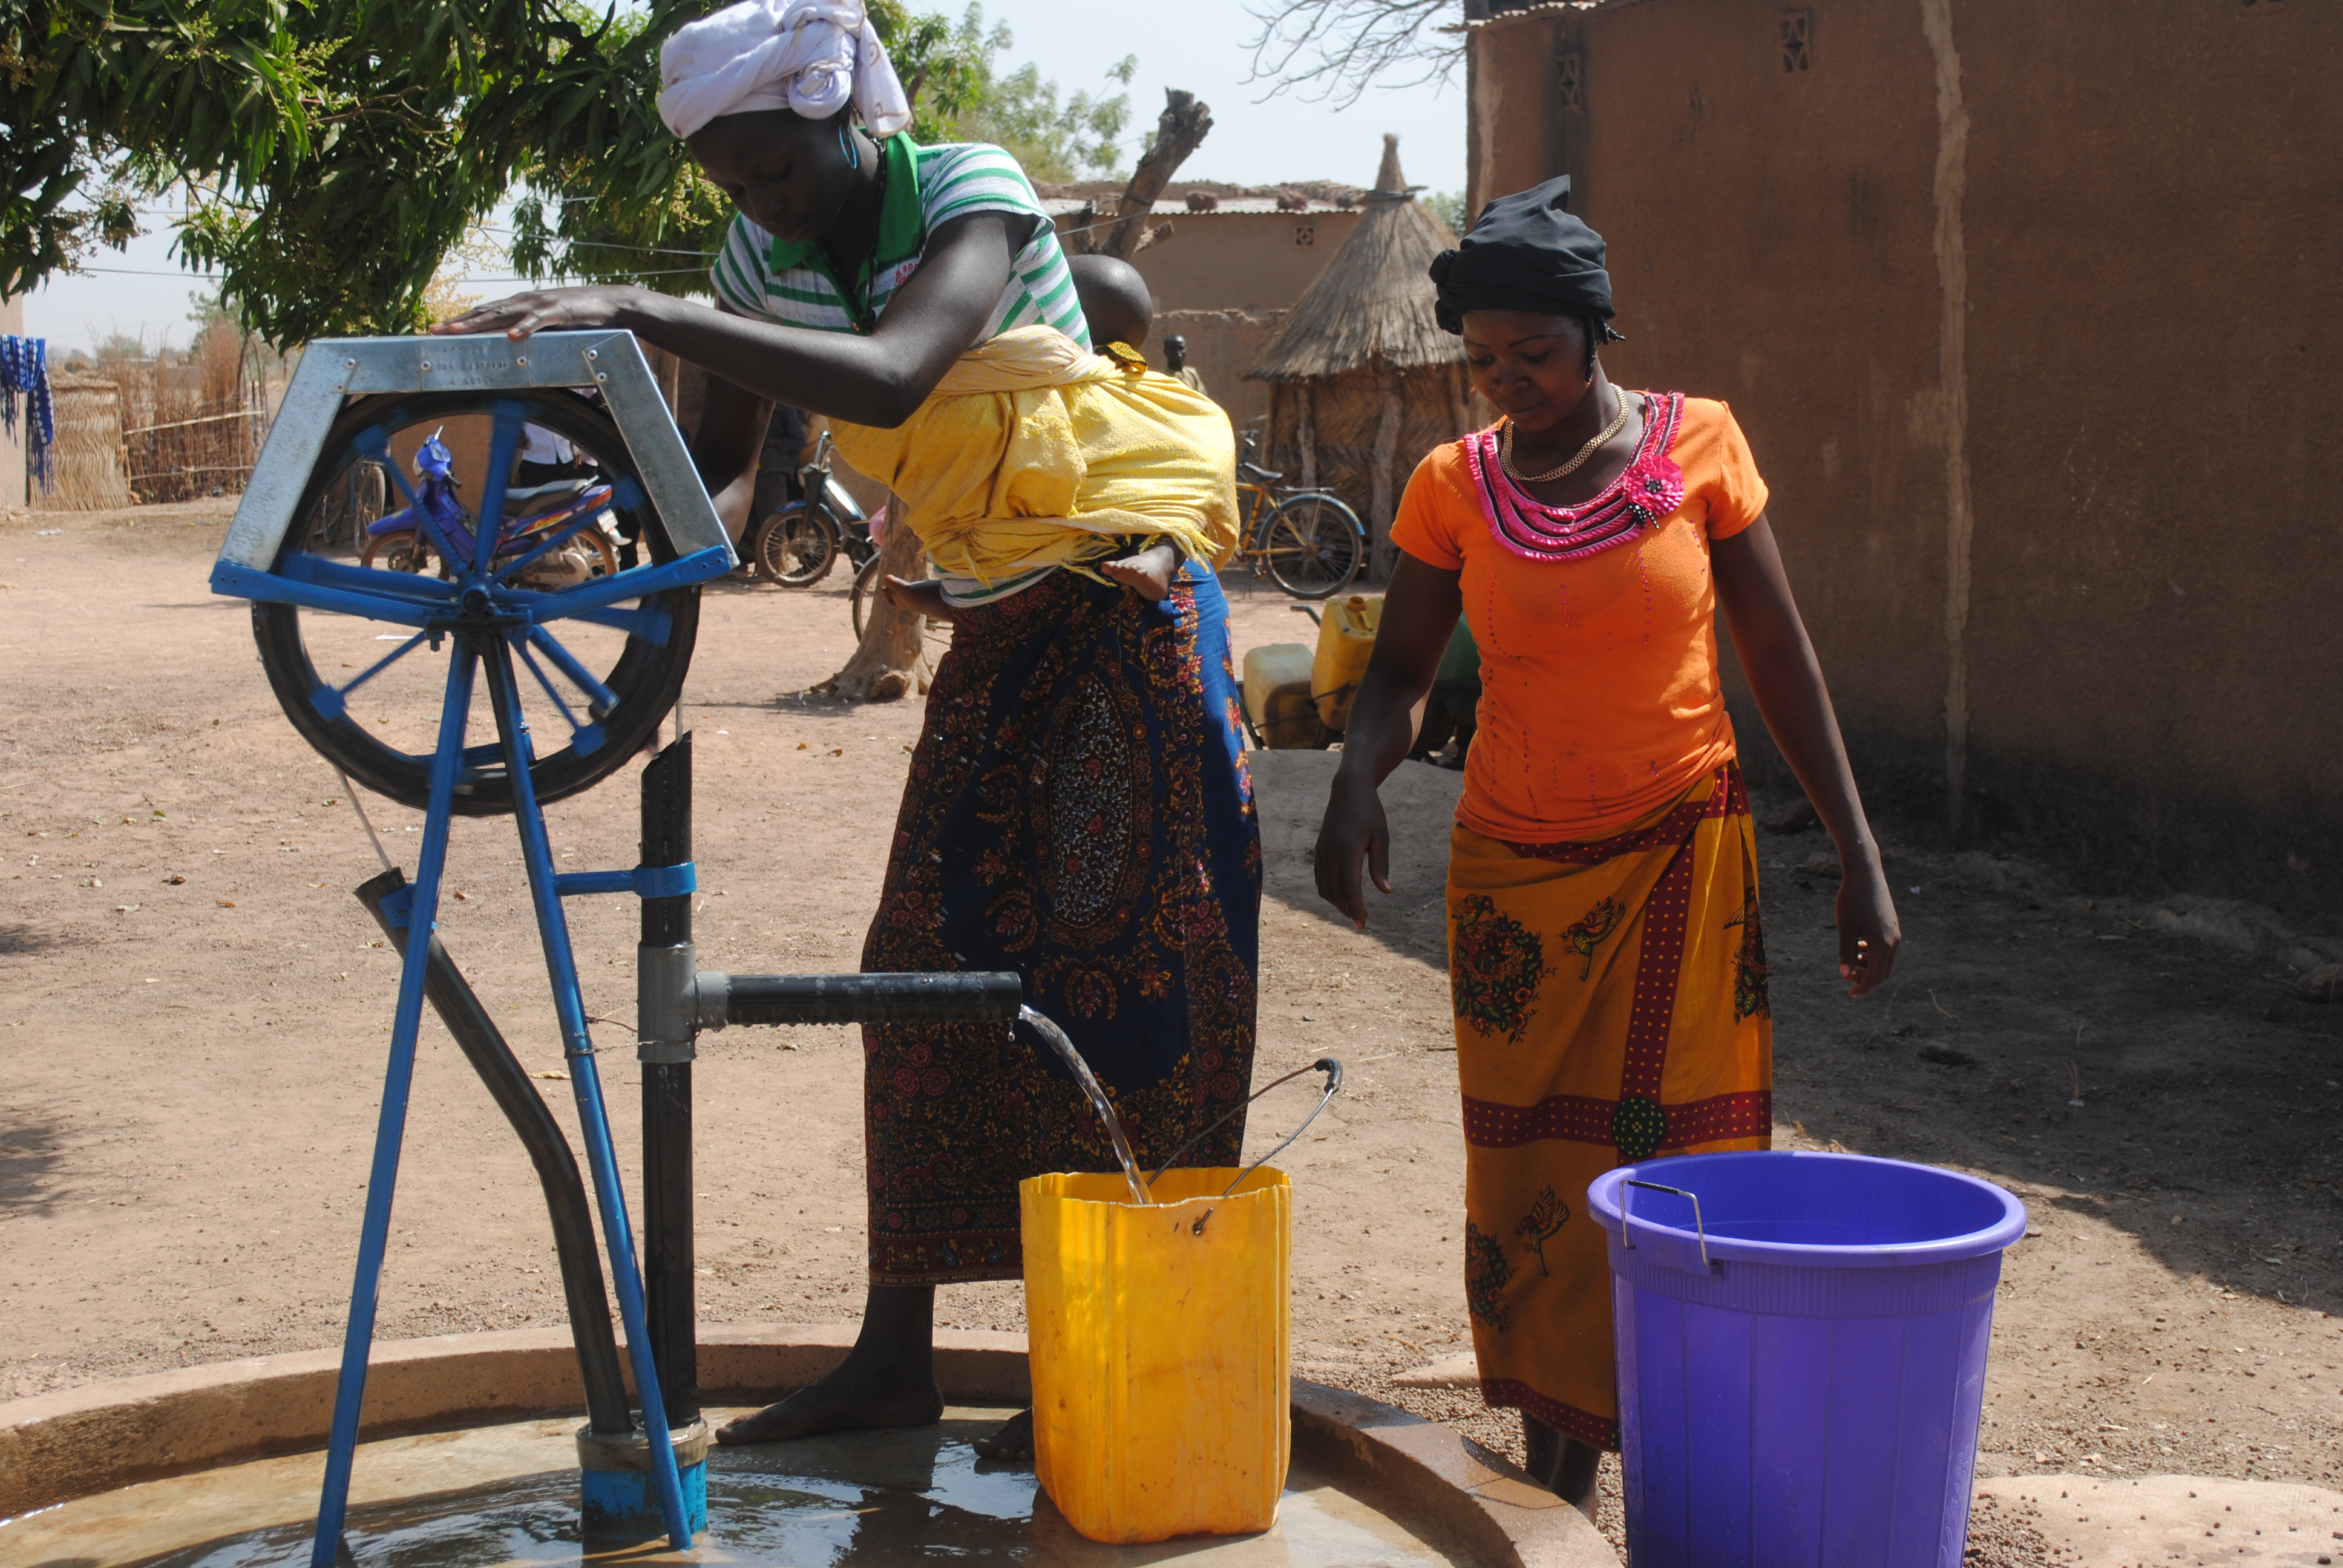 Women gathering water from a well improved by the USAID West Africa Water Supply, Sanitation and Hygiene Program